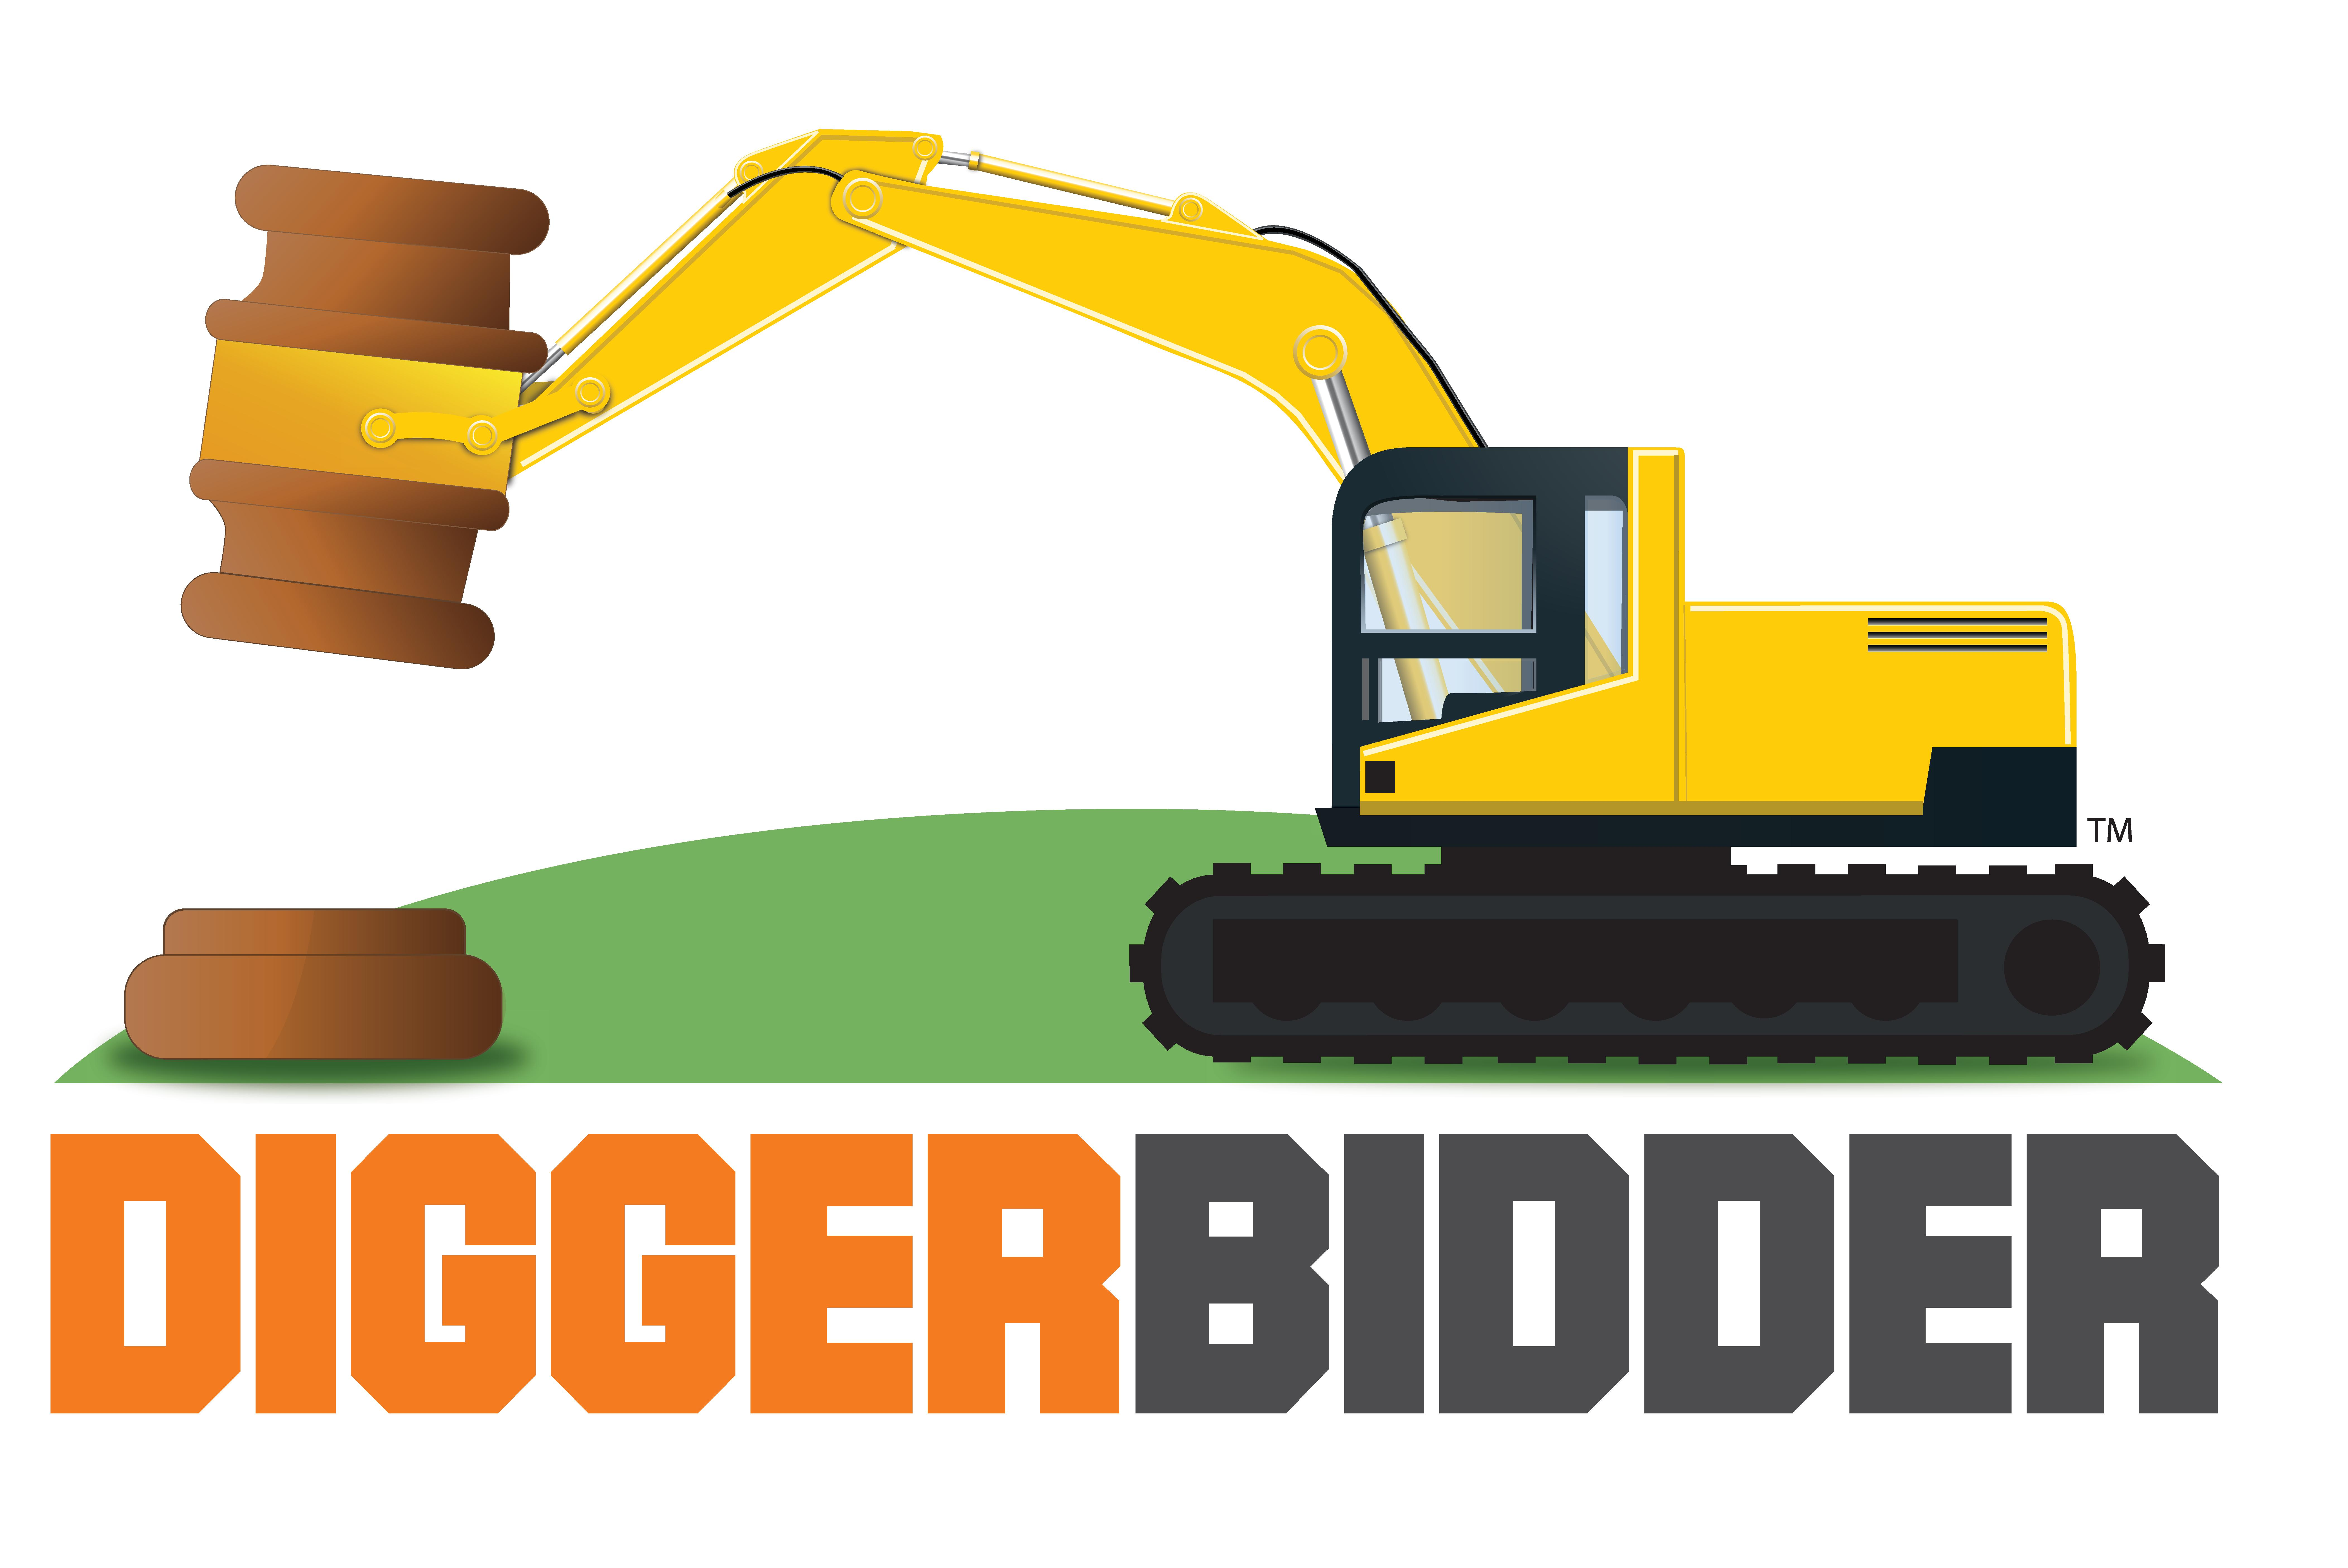 Backhoe clipart plant machinery. Digger bidder the new